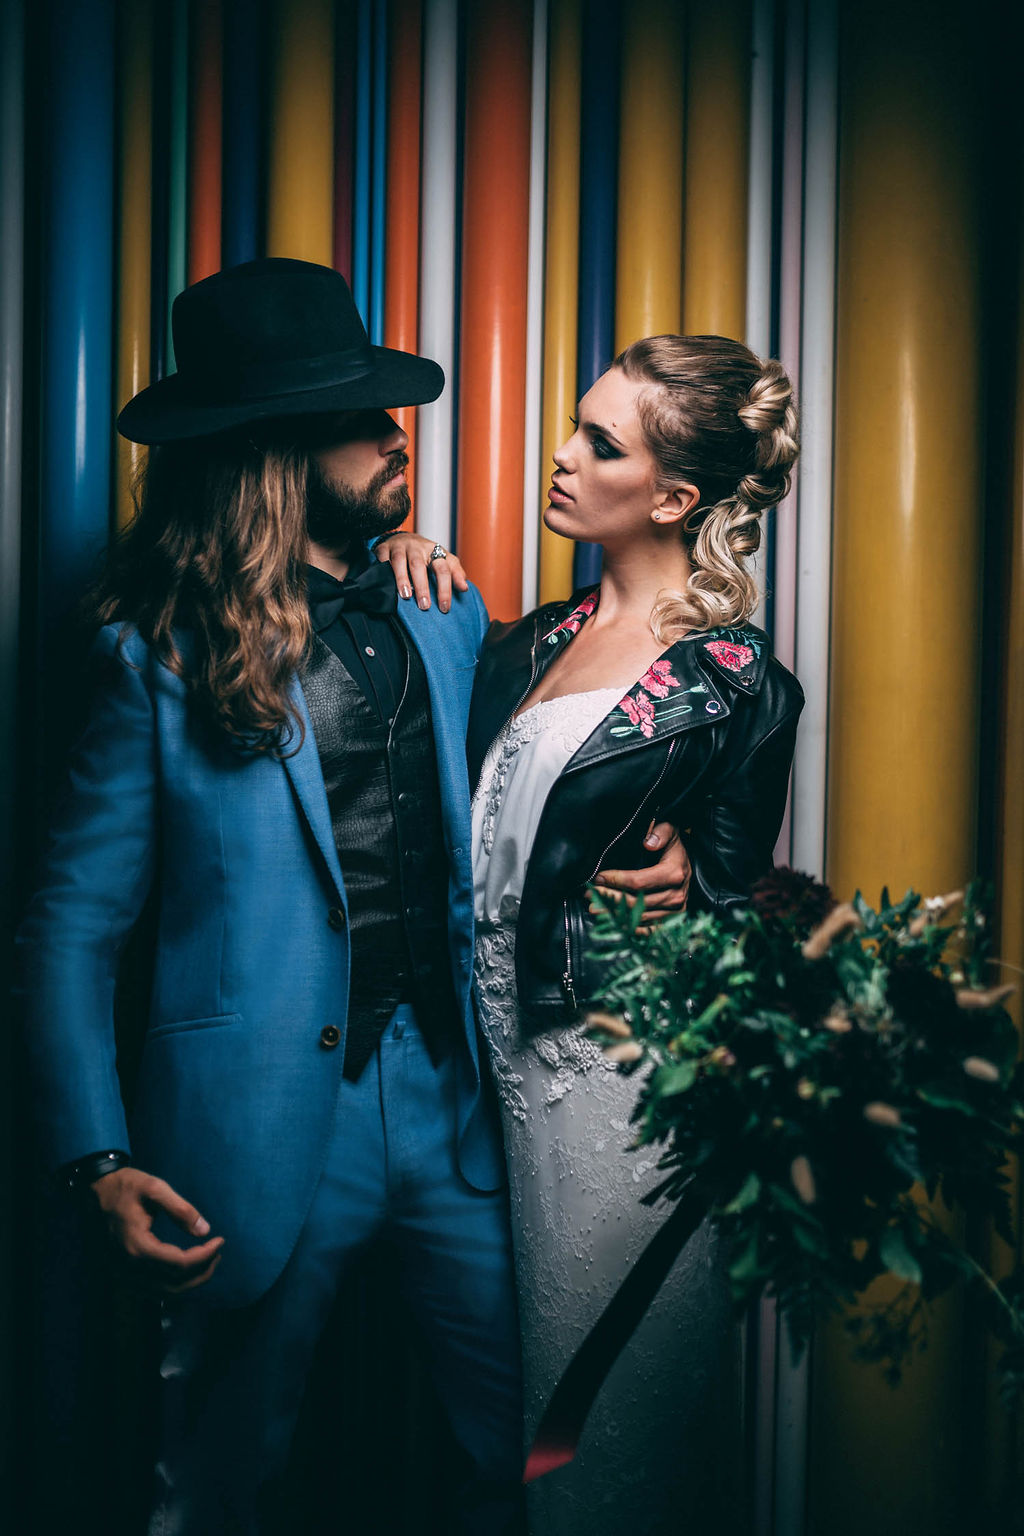 4_4_rock_couple_4_looks_sidneyonthemoon_photographe_chrisvonmartial_robe_mariee_costume_paris_wedding_web.jpg